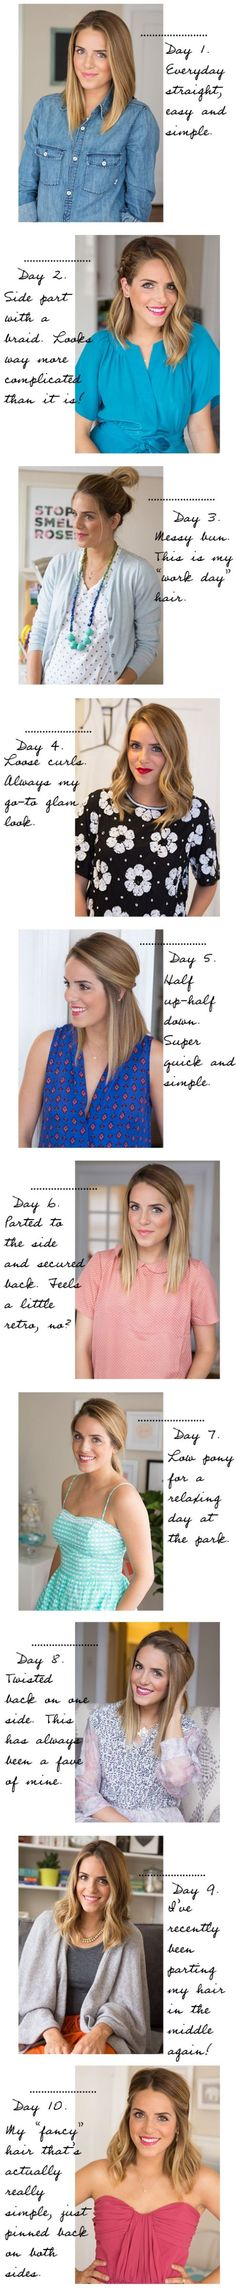 How to change up your look!